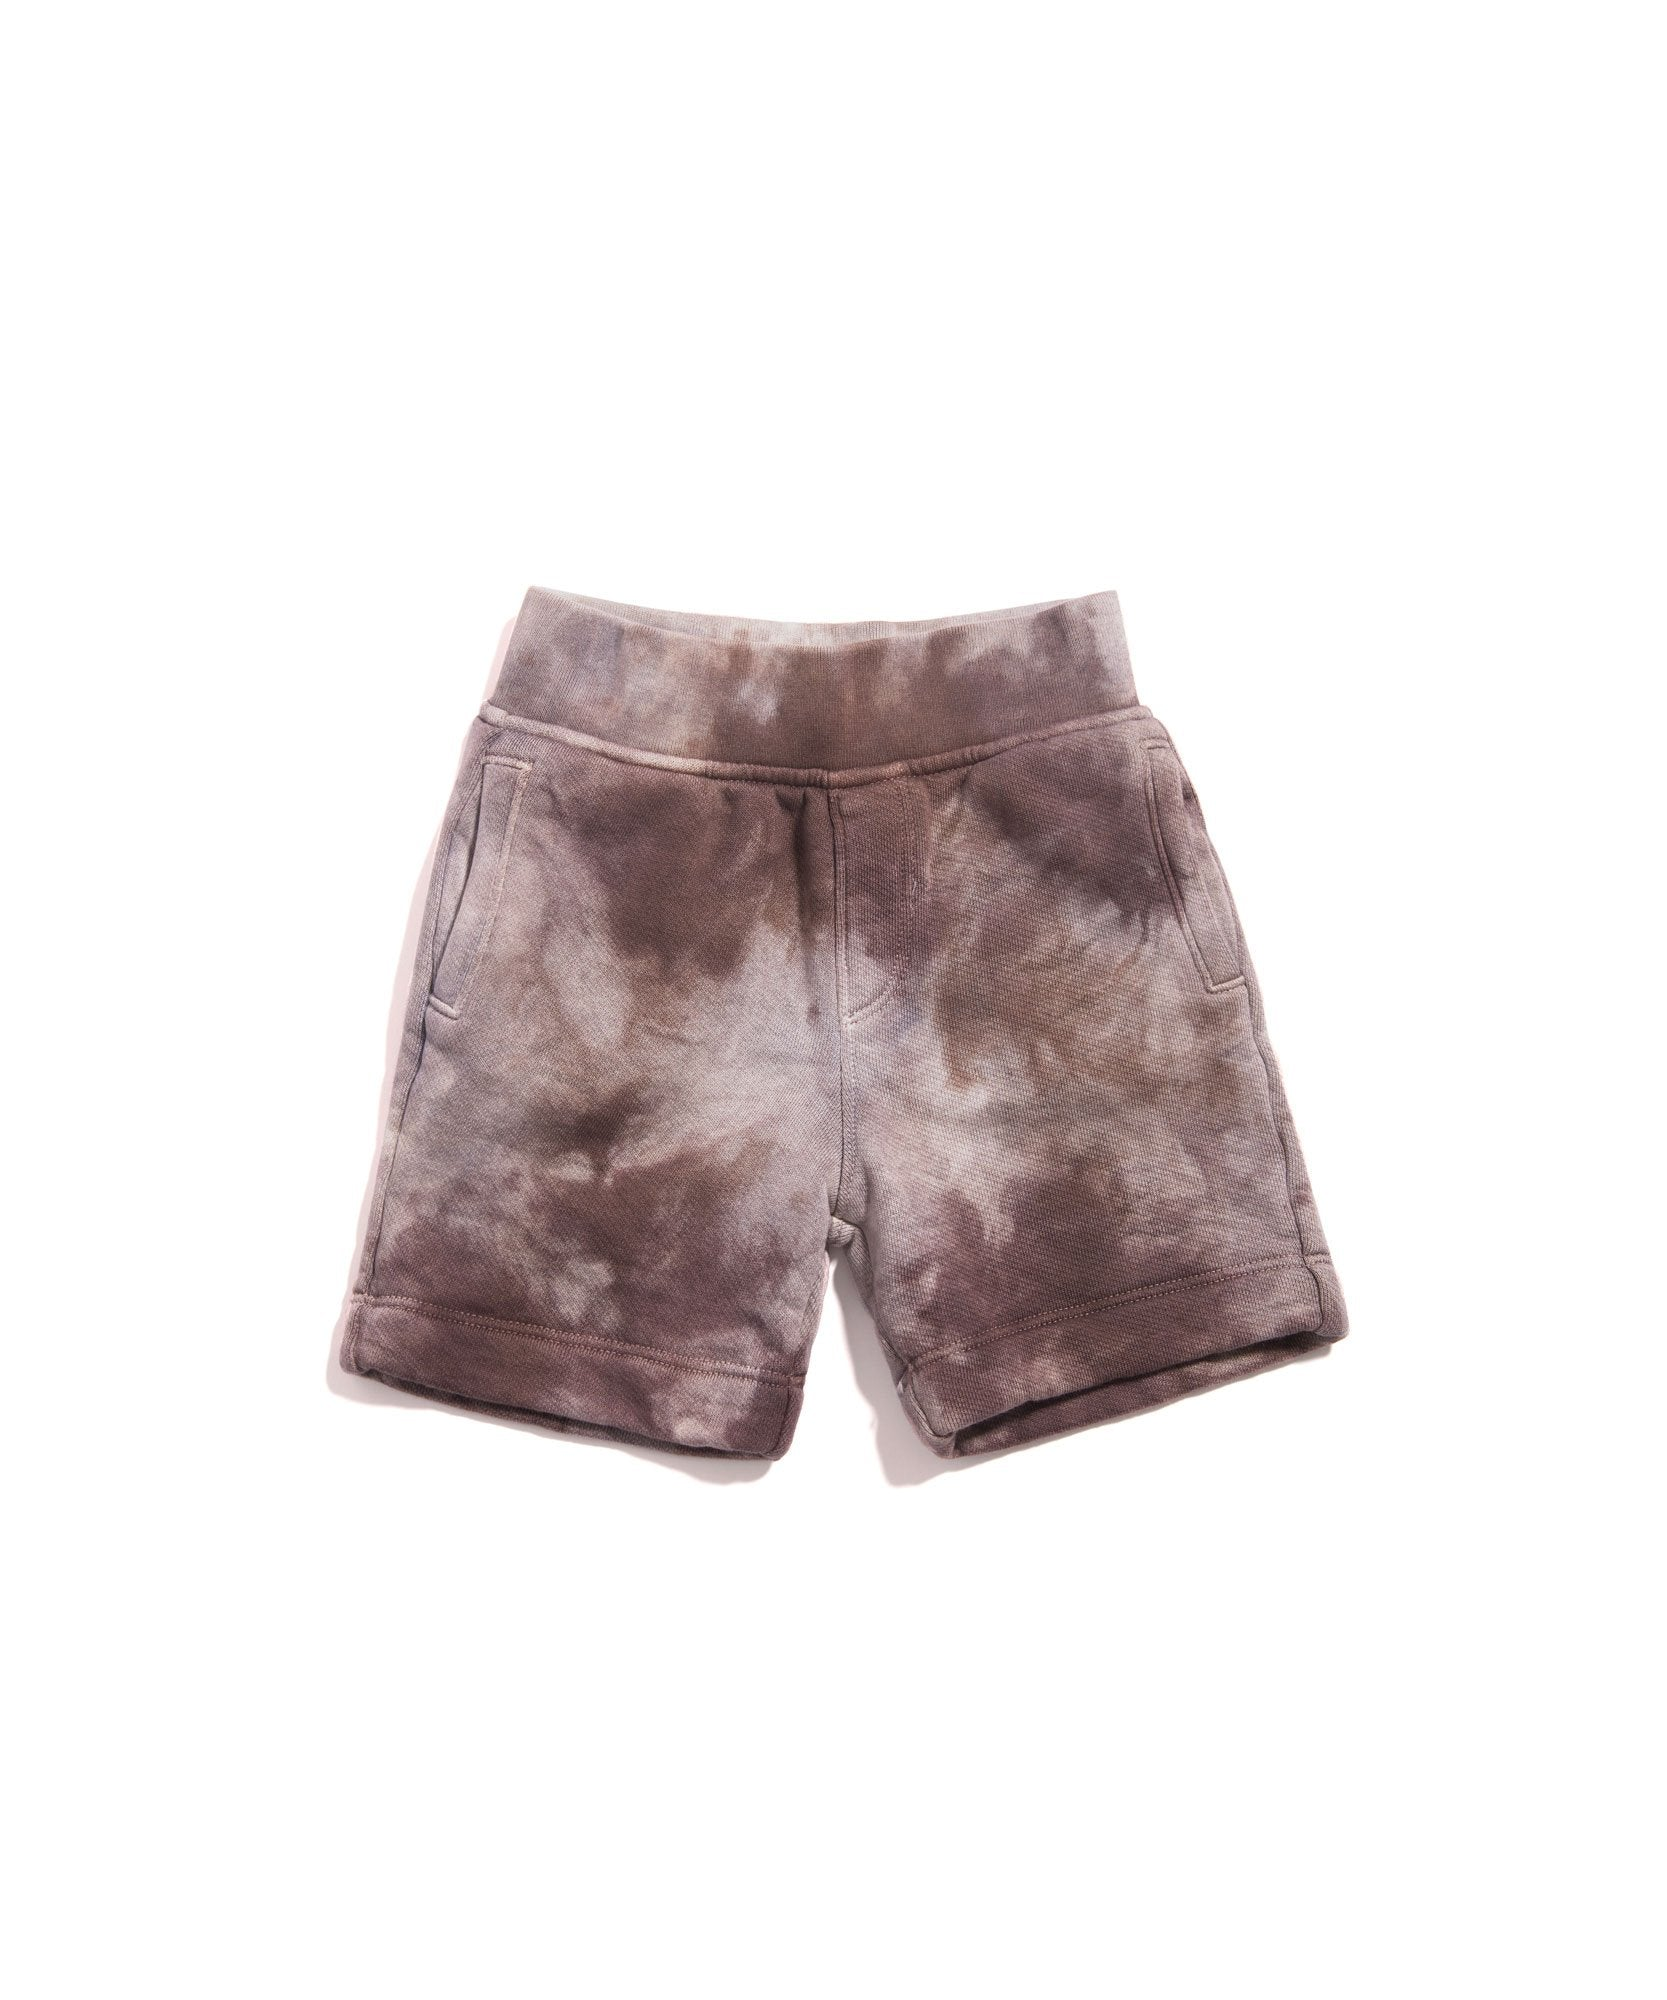 Mushroom Tie Dye Kids French Terry Shorts - Kid's Cotton Shorts by ATM Anthony Thomas Melillo